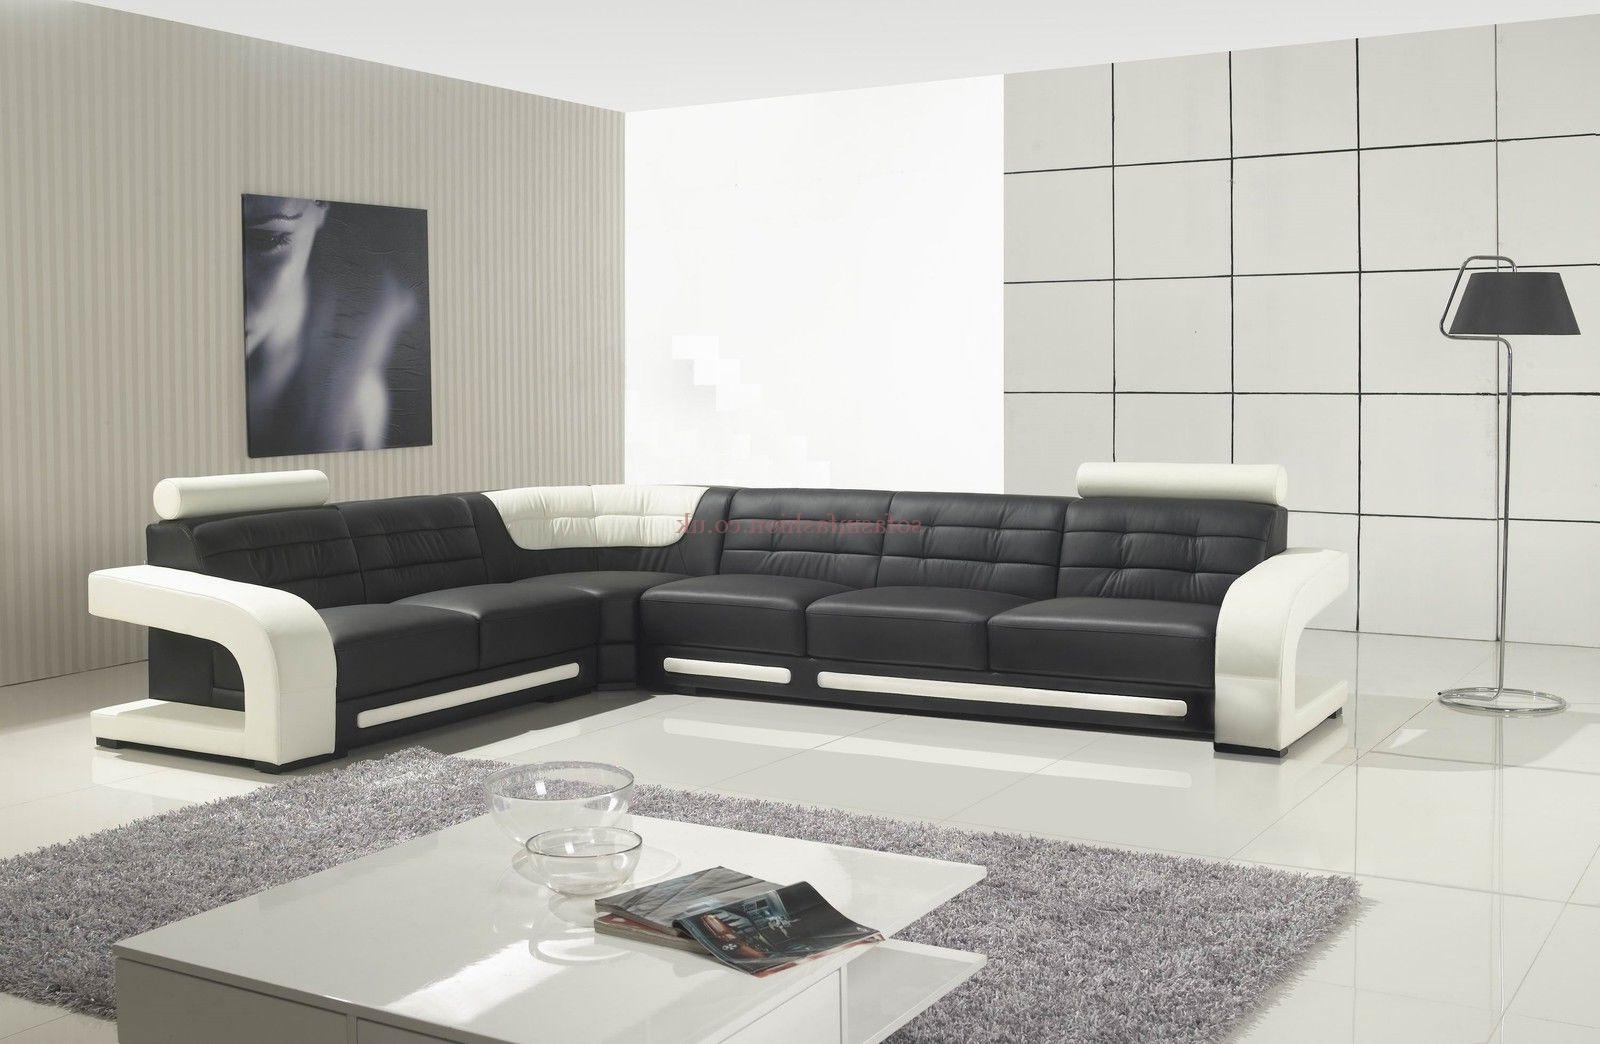 Most Recently Released Best Leather Corner Sofas With Leather Corner Sofa Black White Inside White Leather Corner Sofas (View 9 of 15)